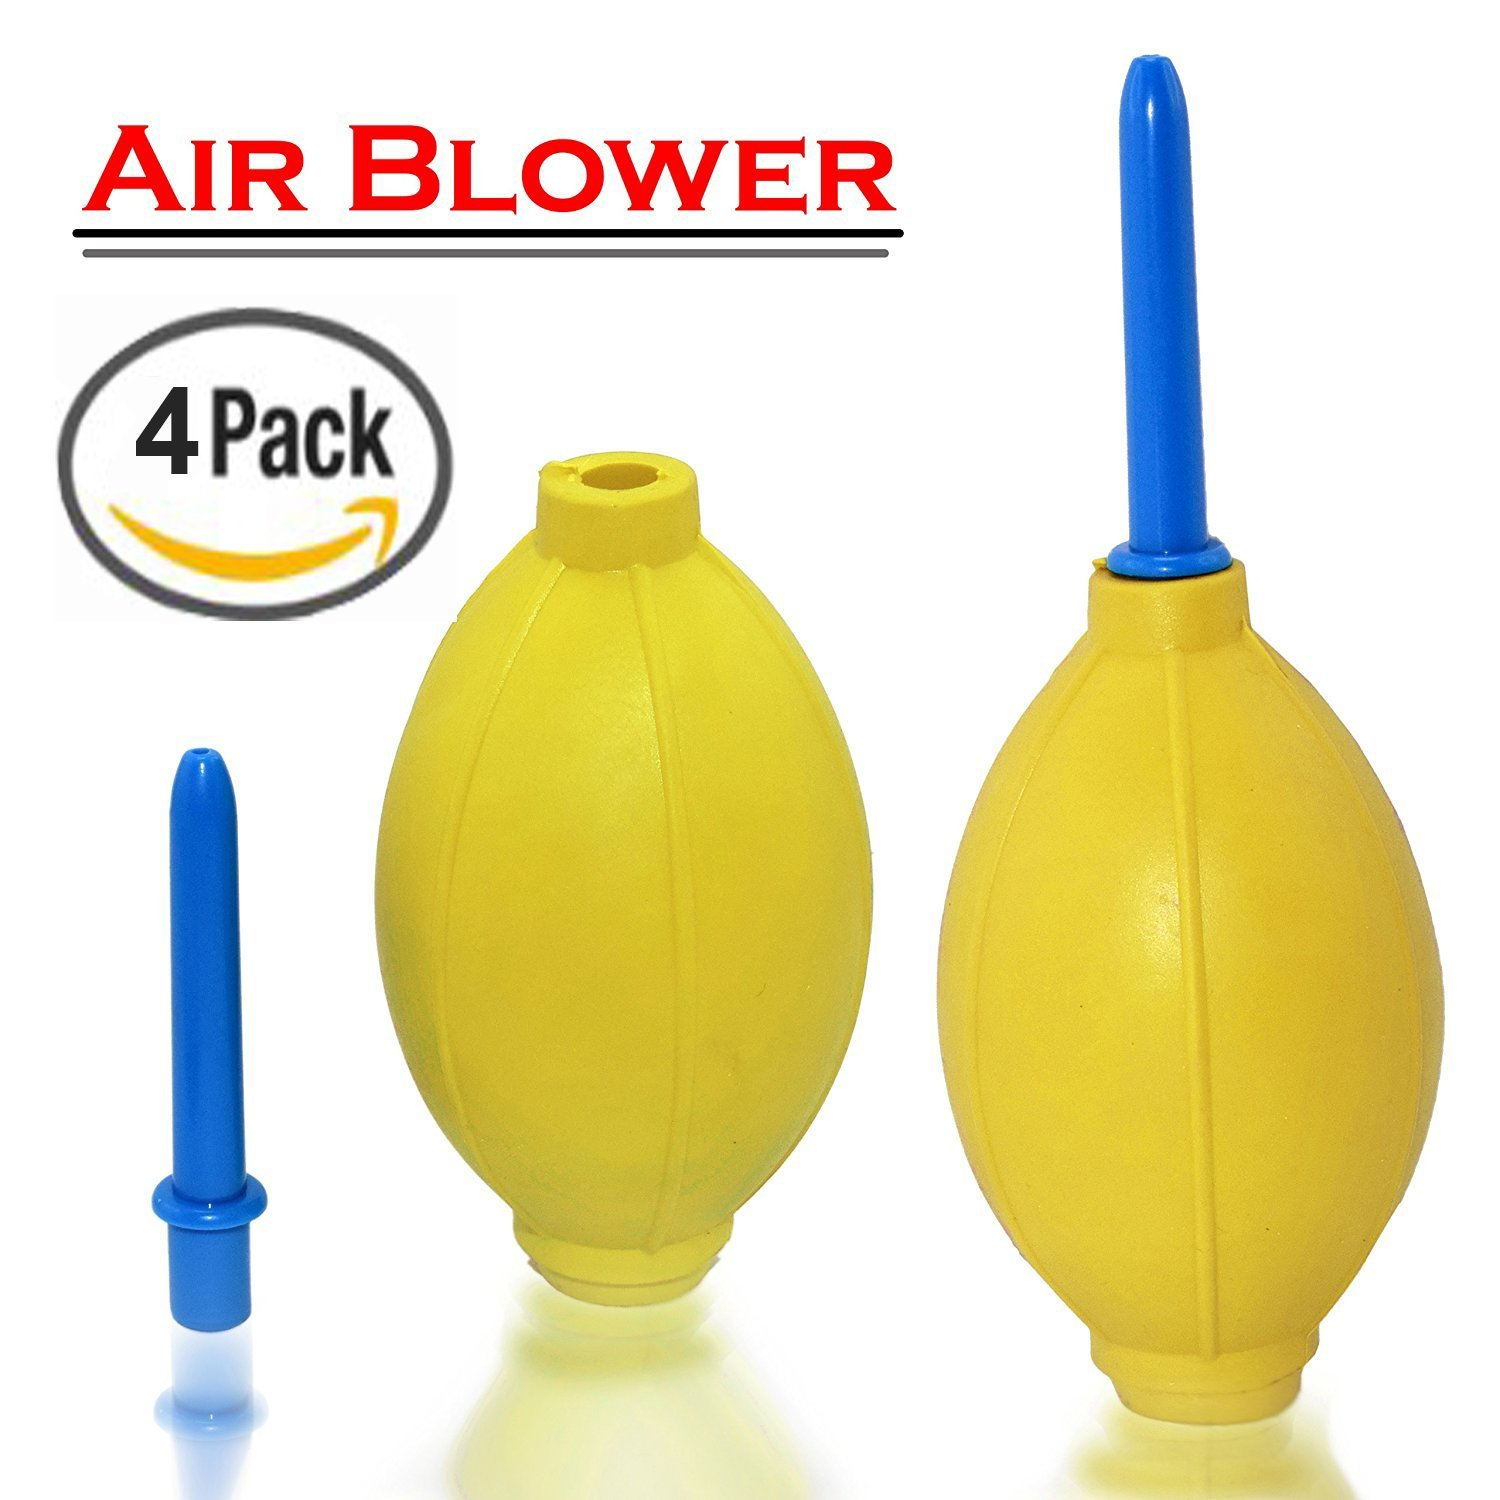 New Rubber Air Pump Cleaner Dust Blower for Keyboard,Digital SLR Camera, Lens, Watch, Cell Phone, Computer Laptop PC and Screen - Yellow (4 PACK)